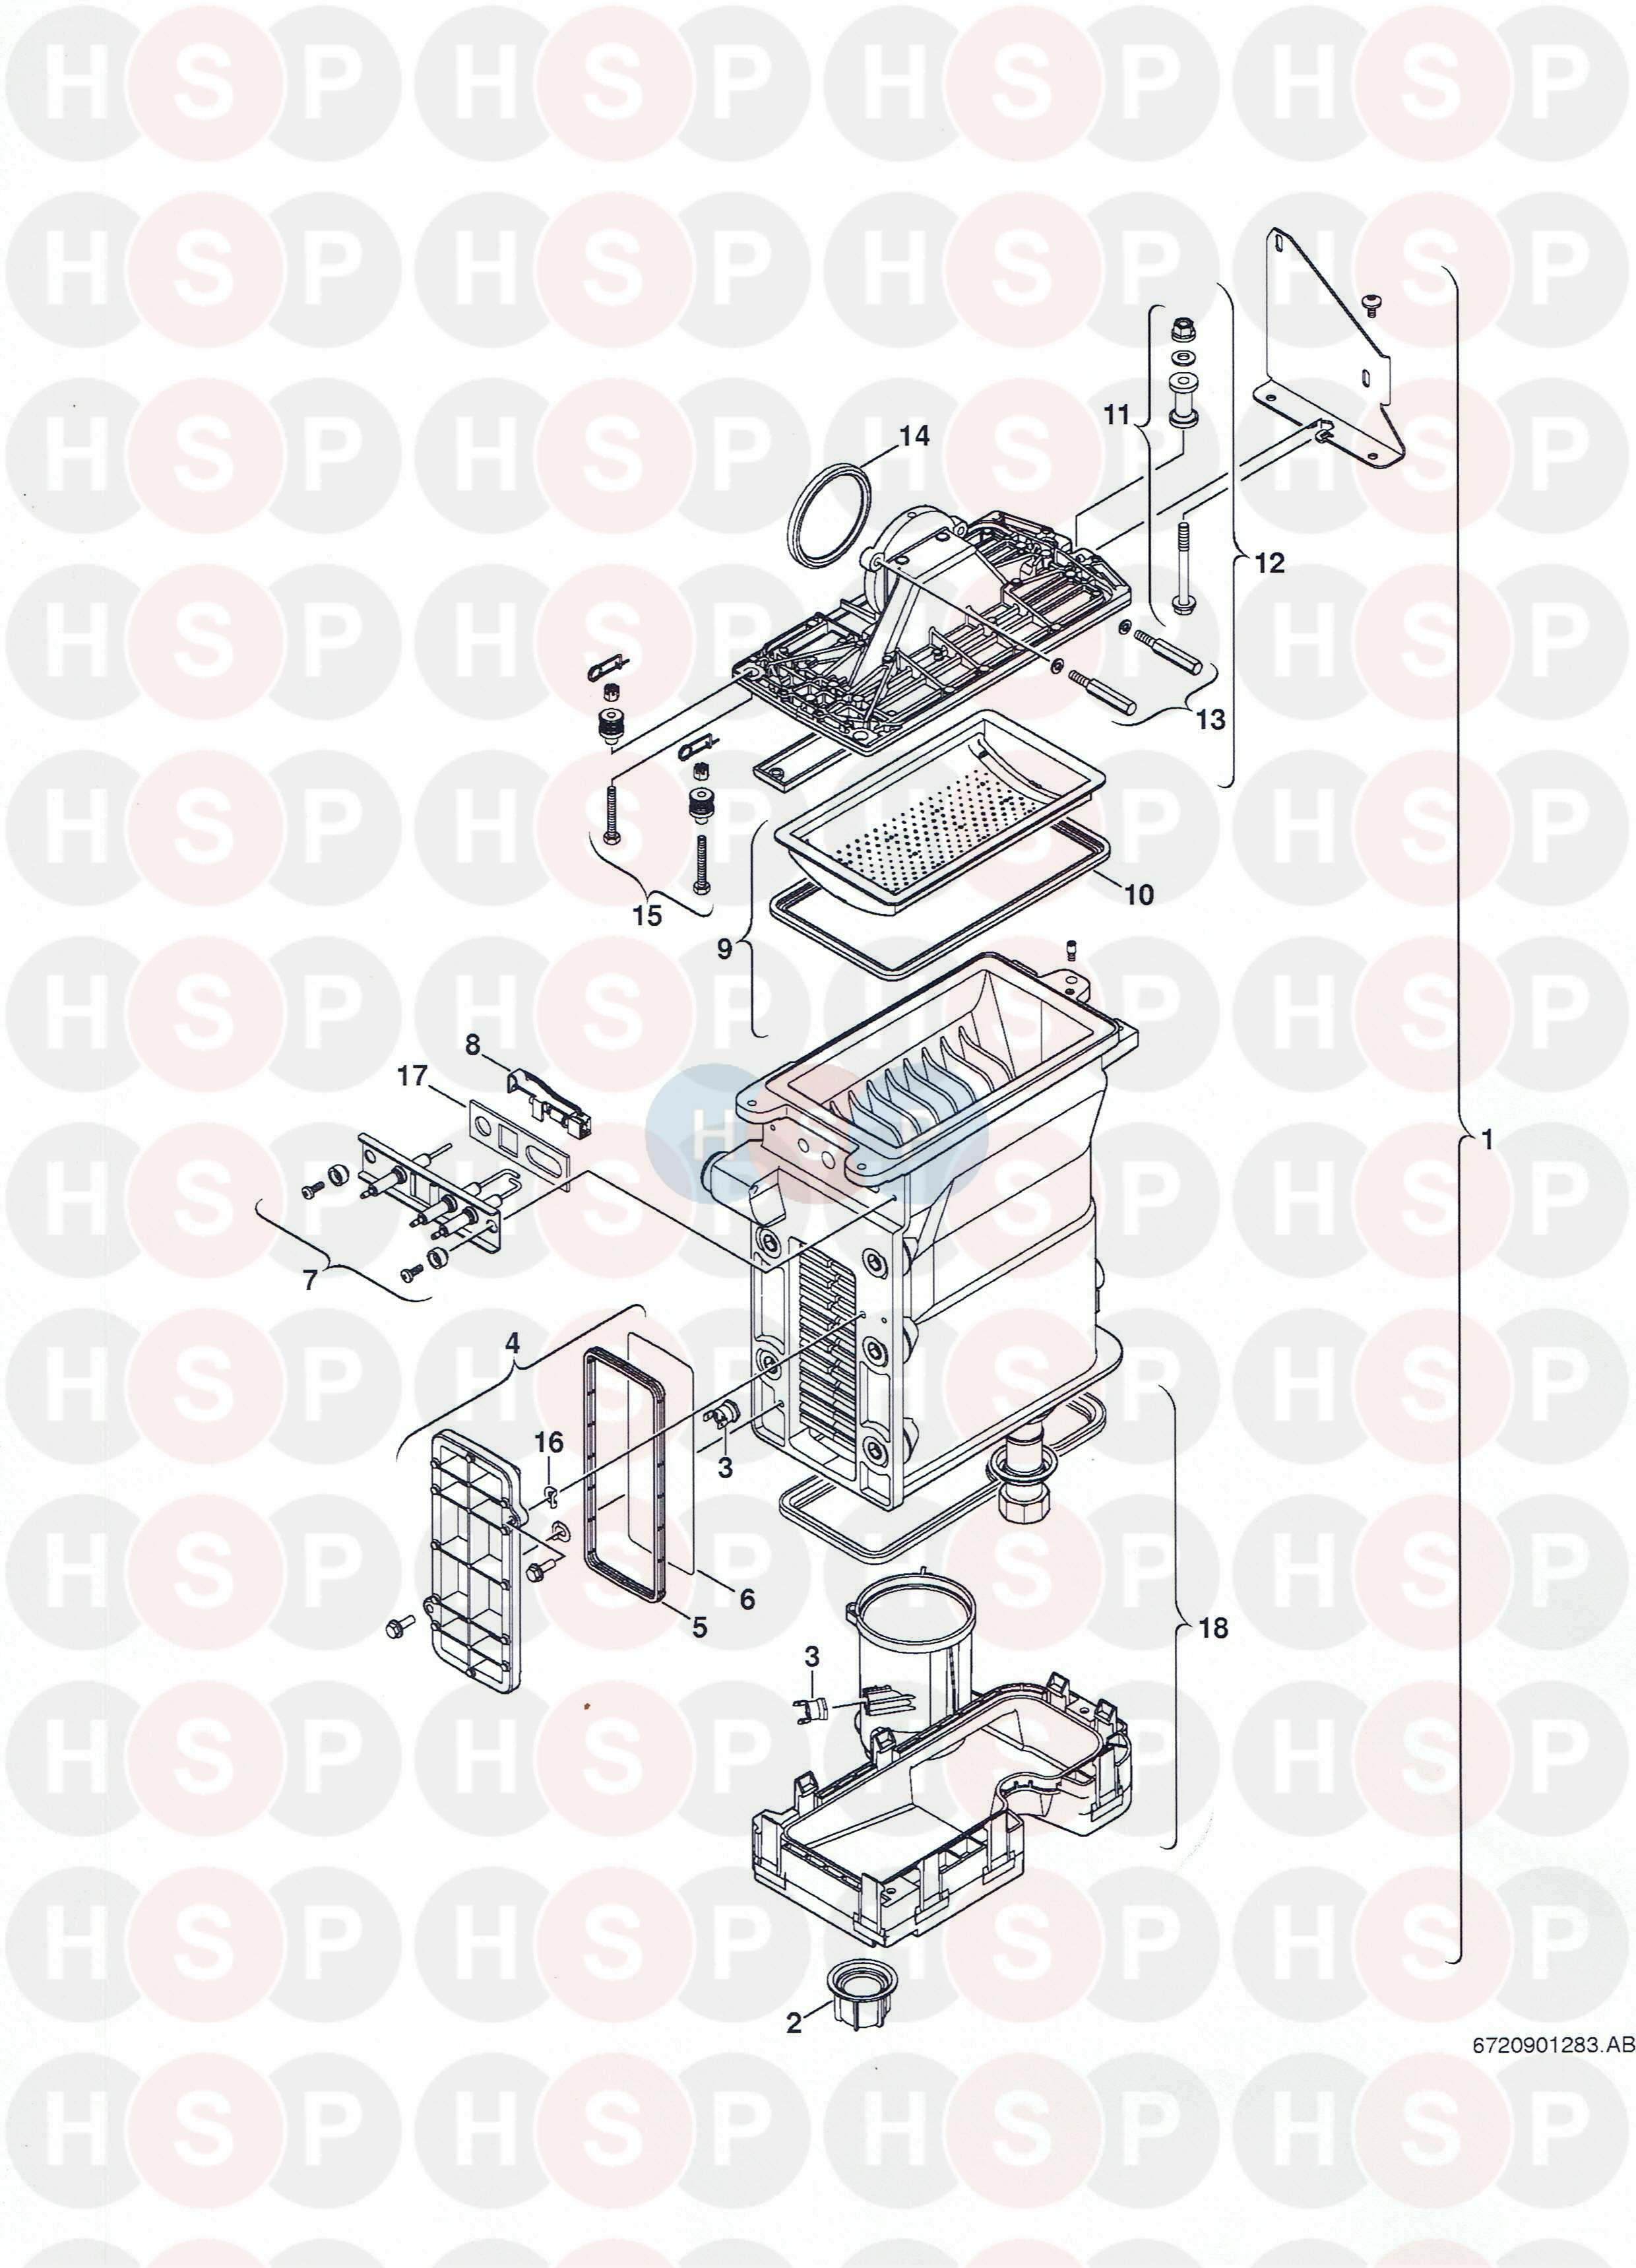 heating control with block diagram with Greenstar Spc Cs1 Spc Fsn Spc 28 Spc Kw Spc System on 167728 besides Coolant Temp Sensor Location 213371 moreover 231419942983 besides 256 as well Batch Chemical Reactor Process.